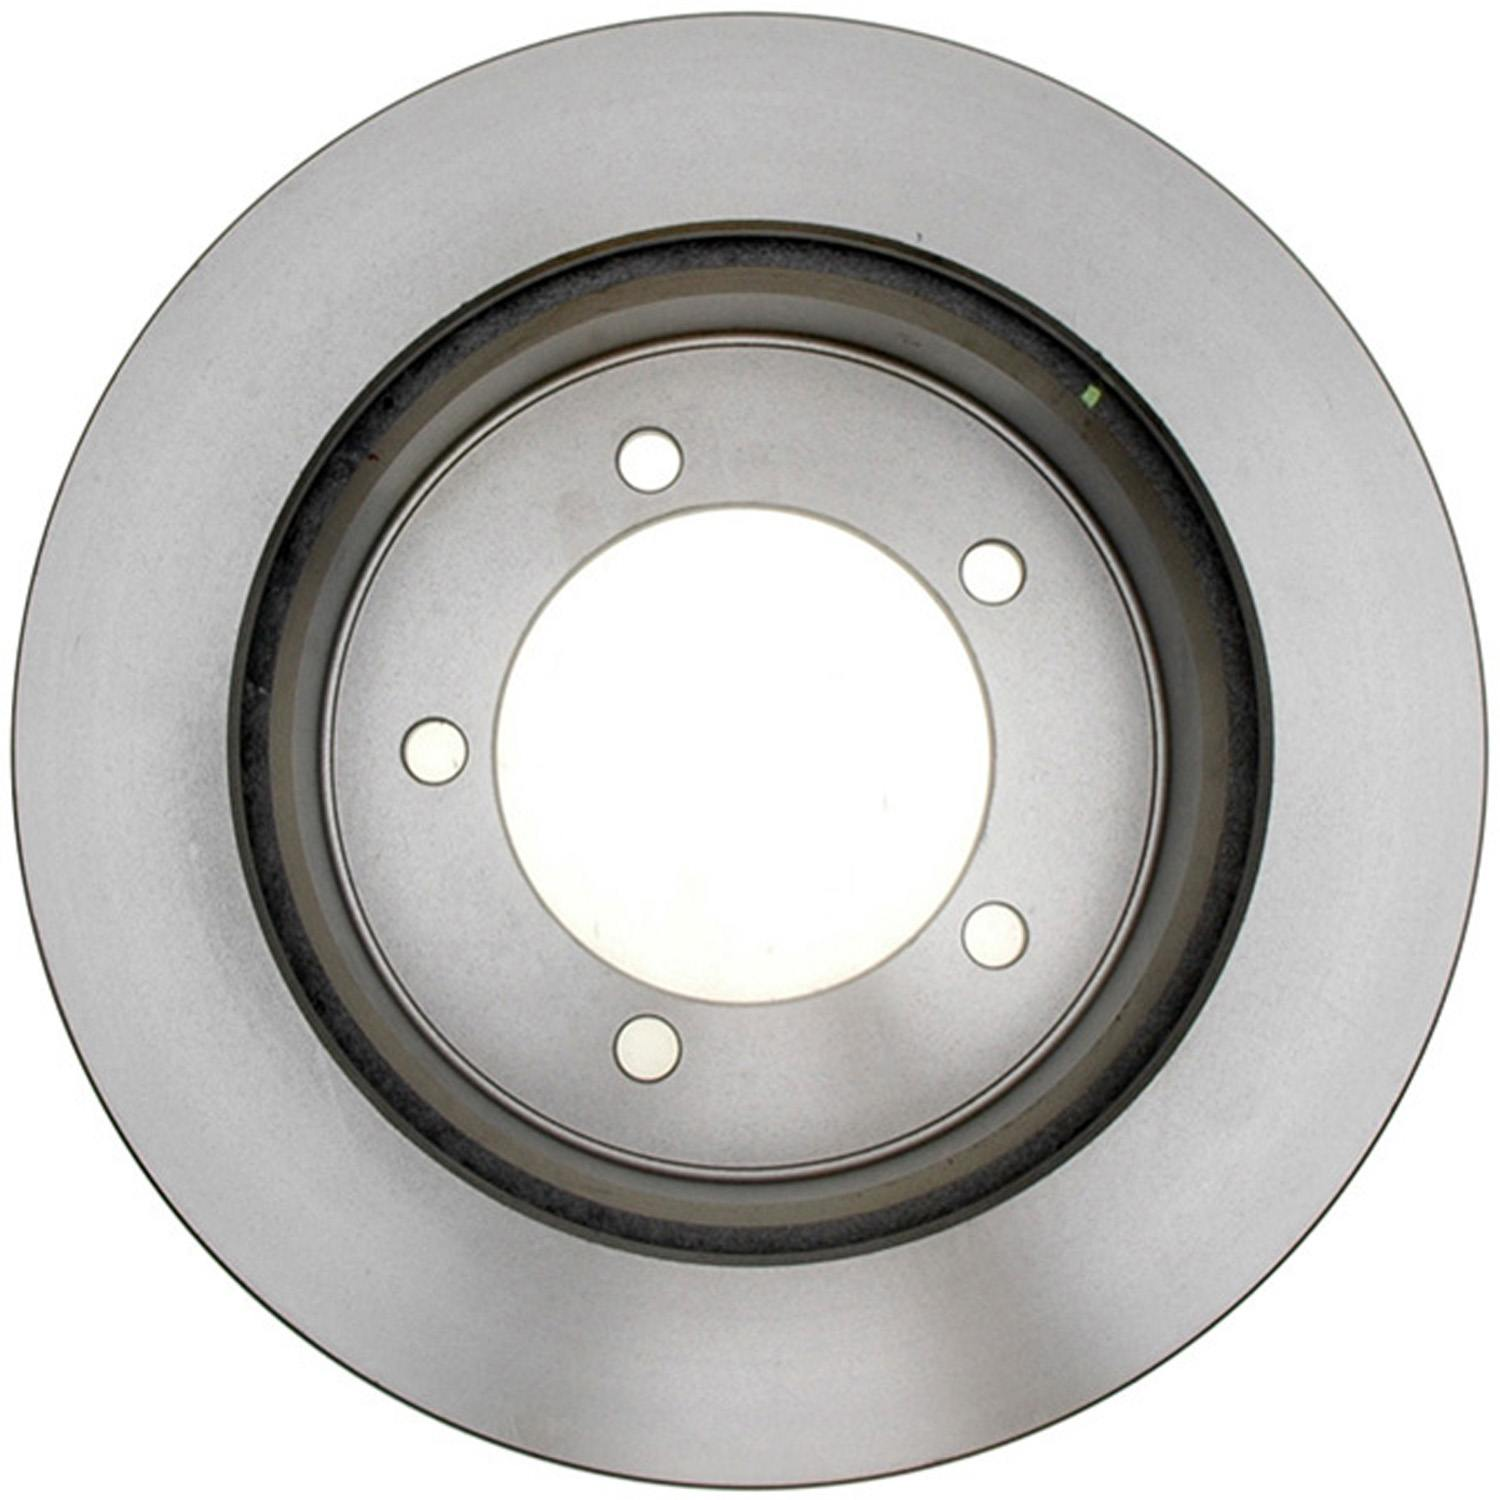 ACDELCO PROFESSIONAL BRAKES - Disc Brake Rotor - ADU 18A177